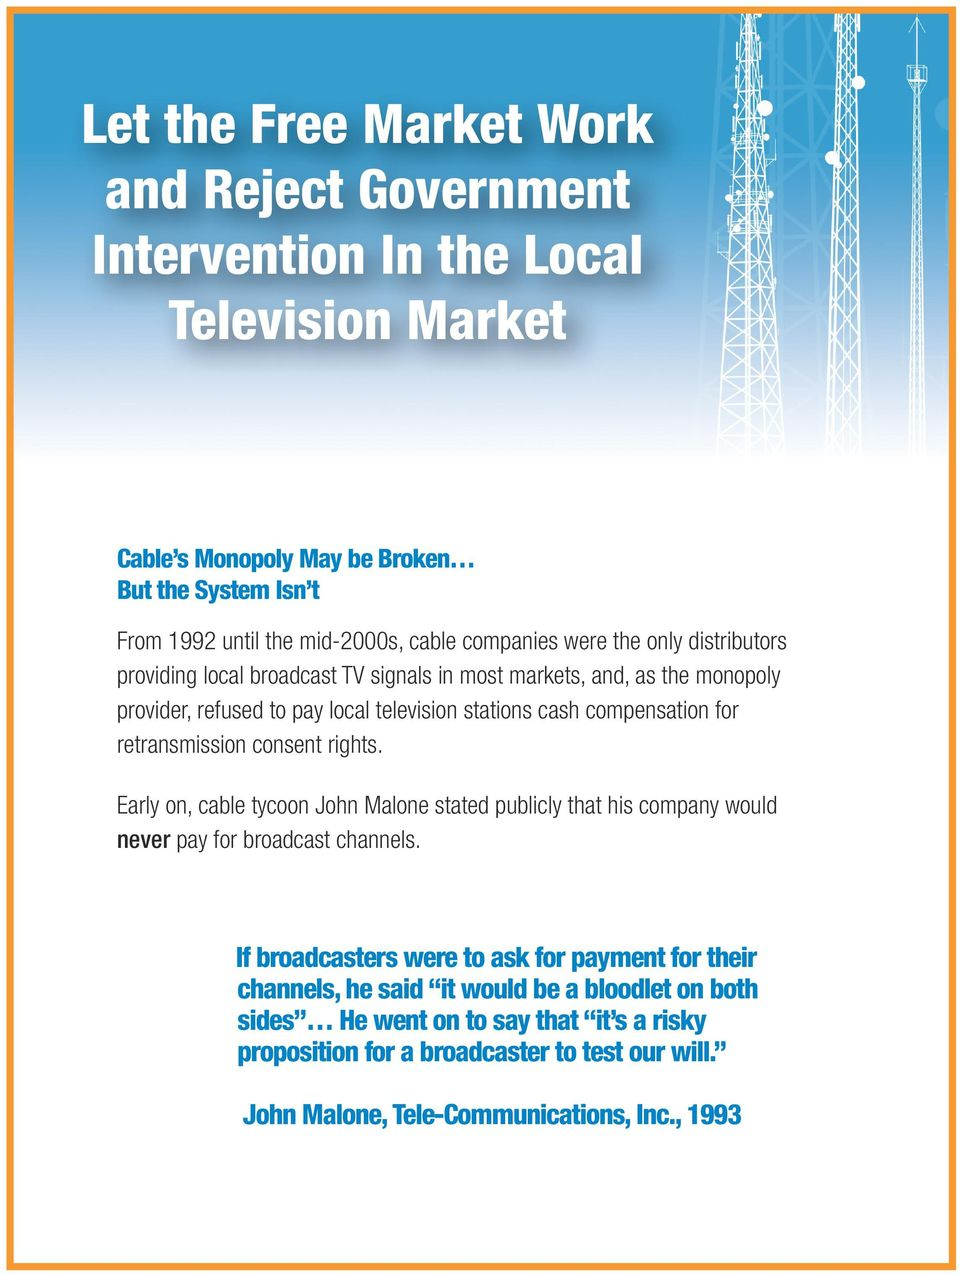 retransmission consent rights. Early on, cable tycoon John Malone stated publicly that his company would never pay for broadcast channels.